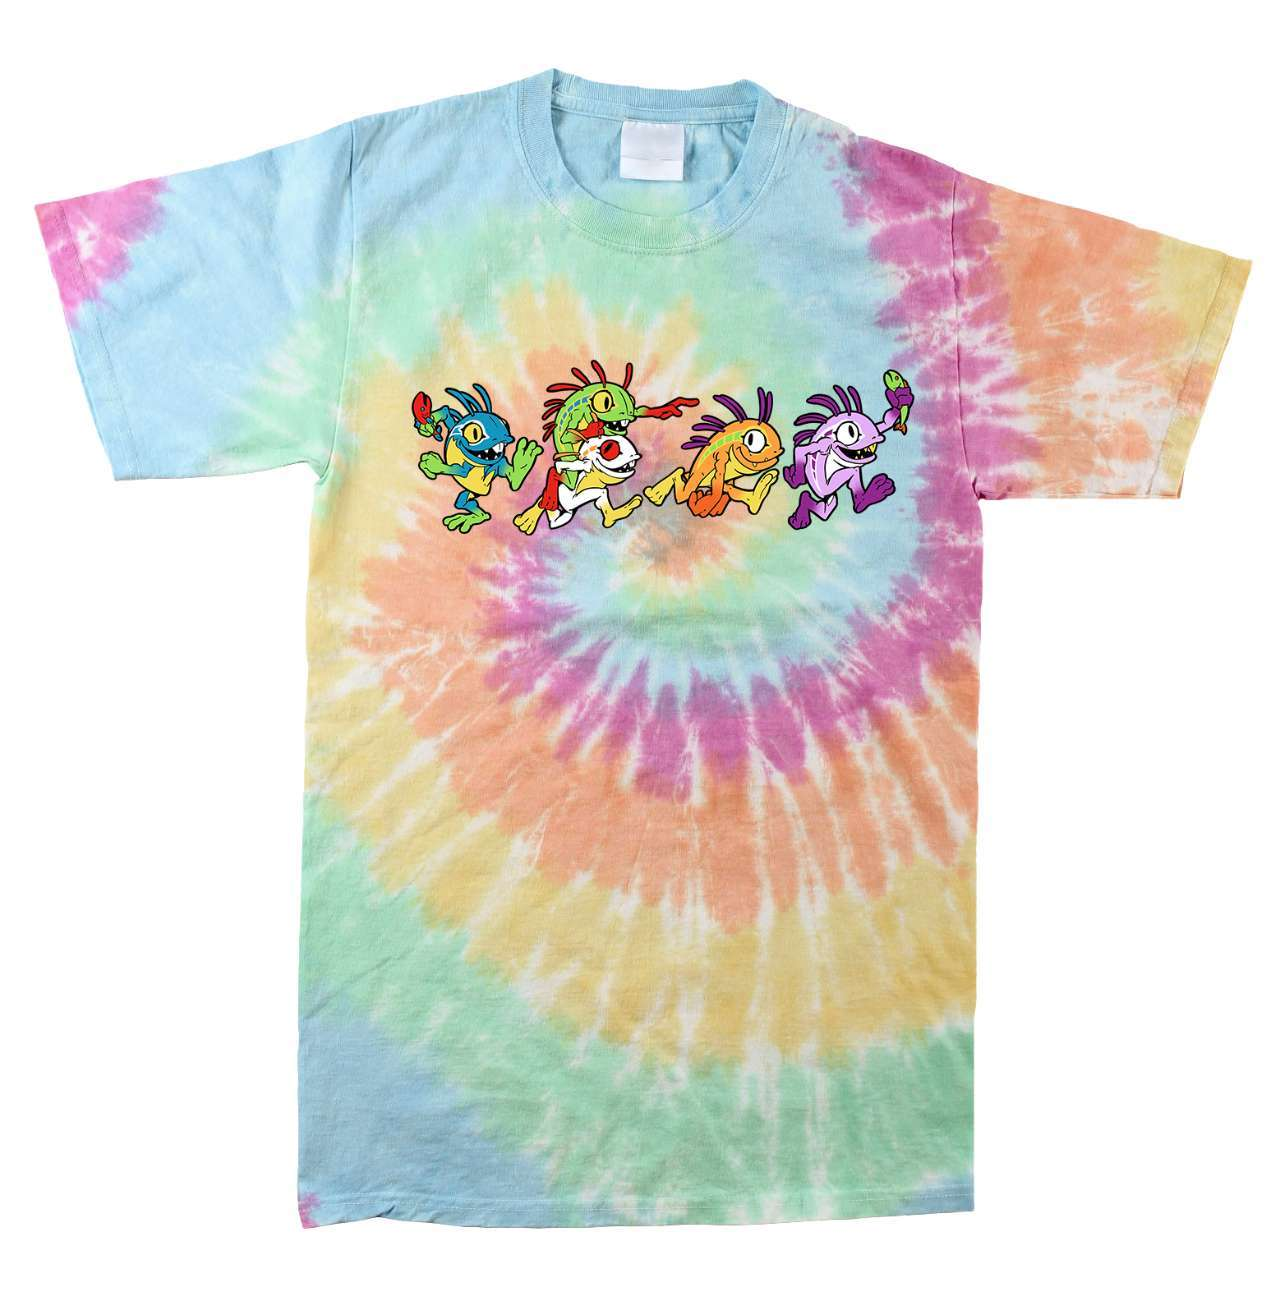 J!NX World of Warcraft Grateful Murlocs Tie Dye T-Shirt